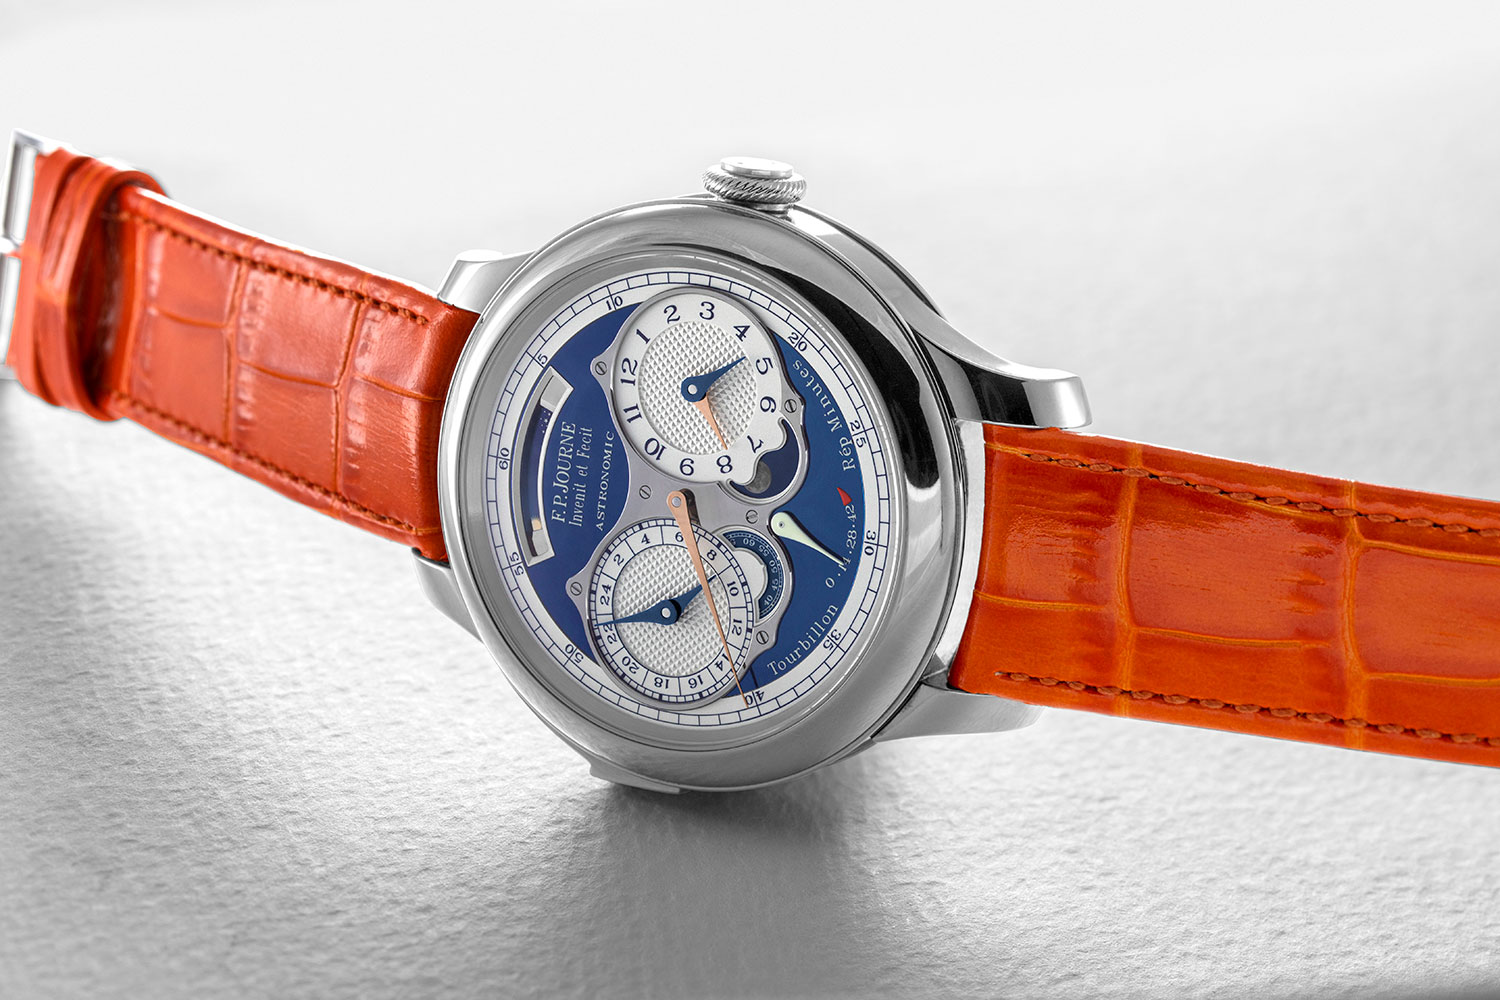 The F.P. Journe Astronomic Blue at Only Watch Auction 2019